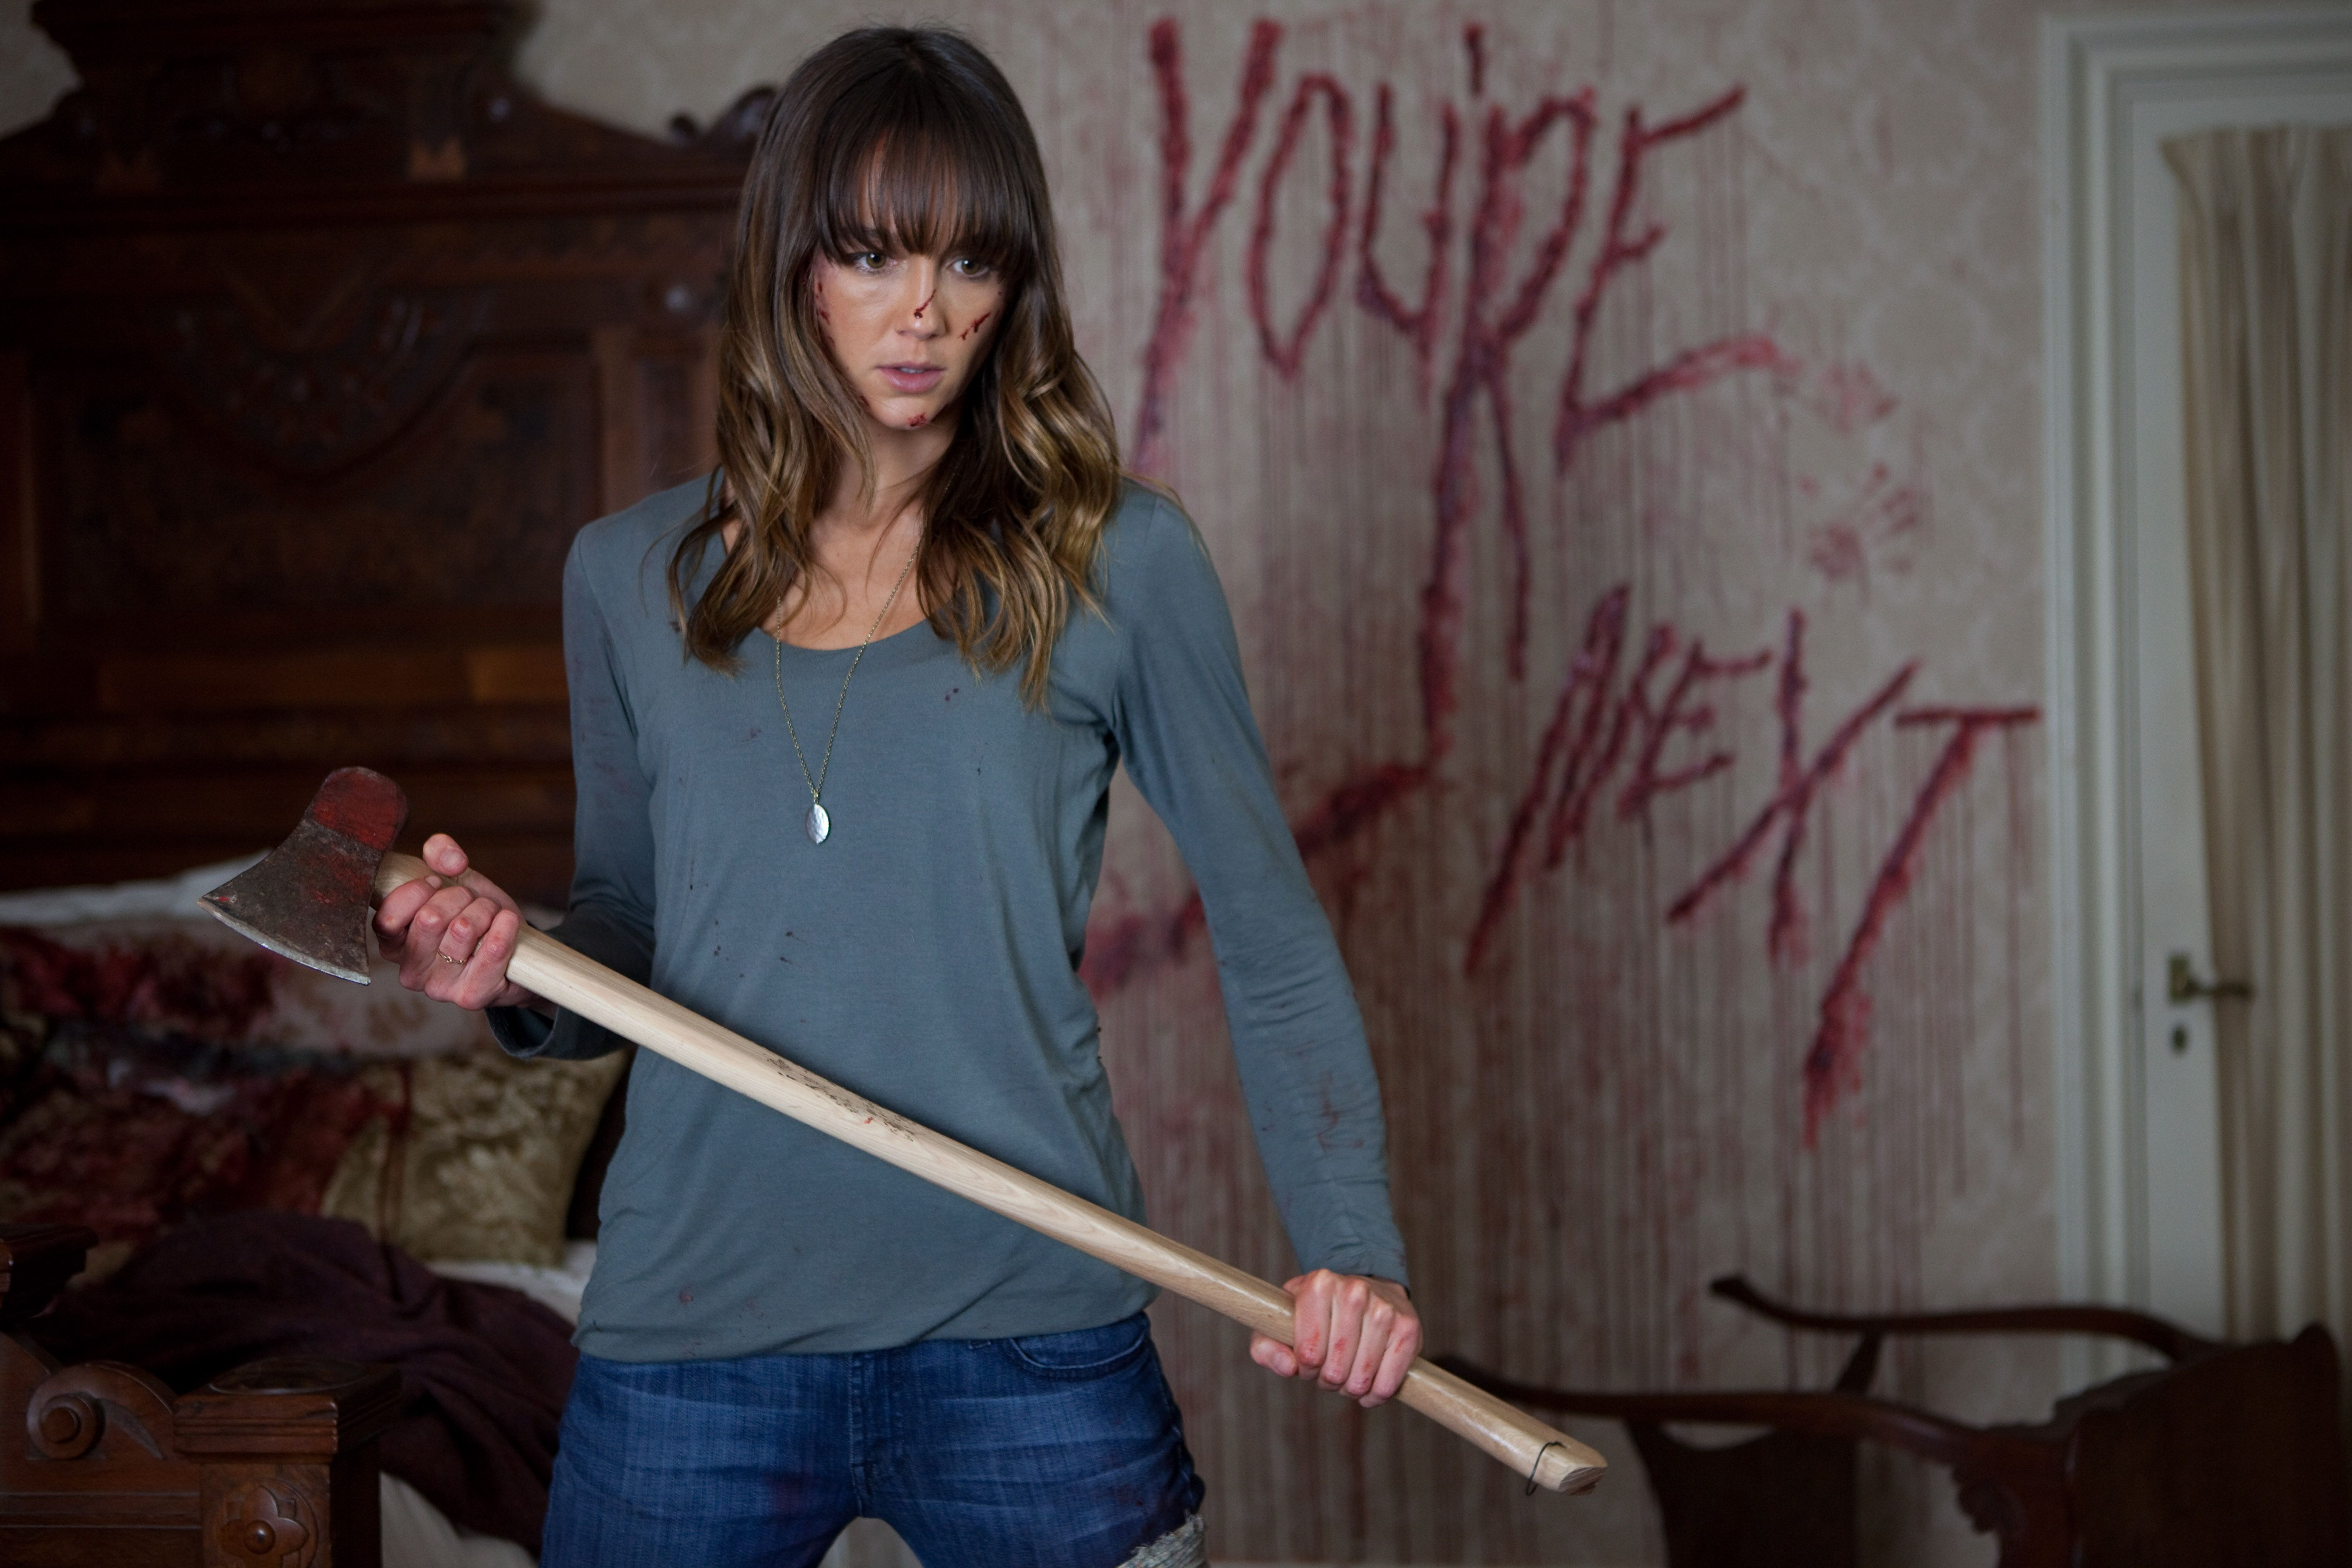 YoureNext You're next, Horror movies, Netflix streaming